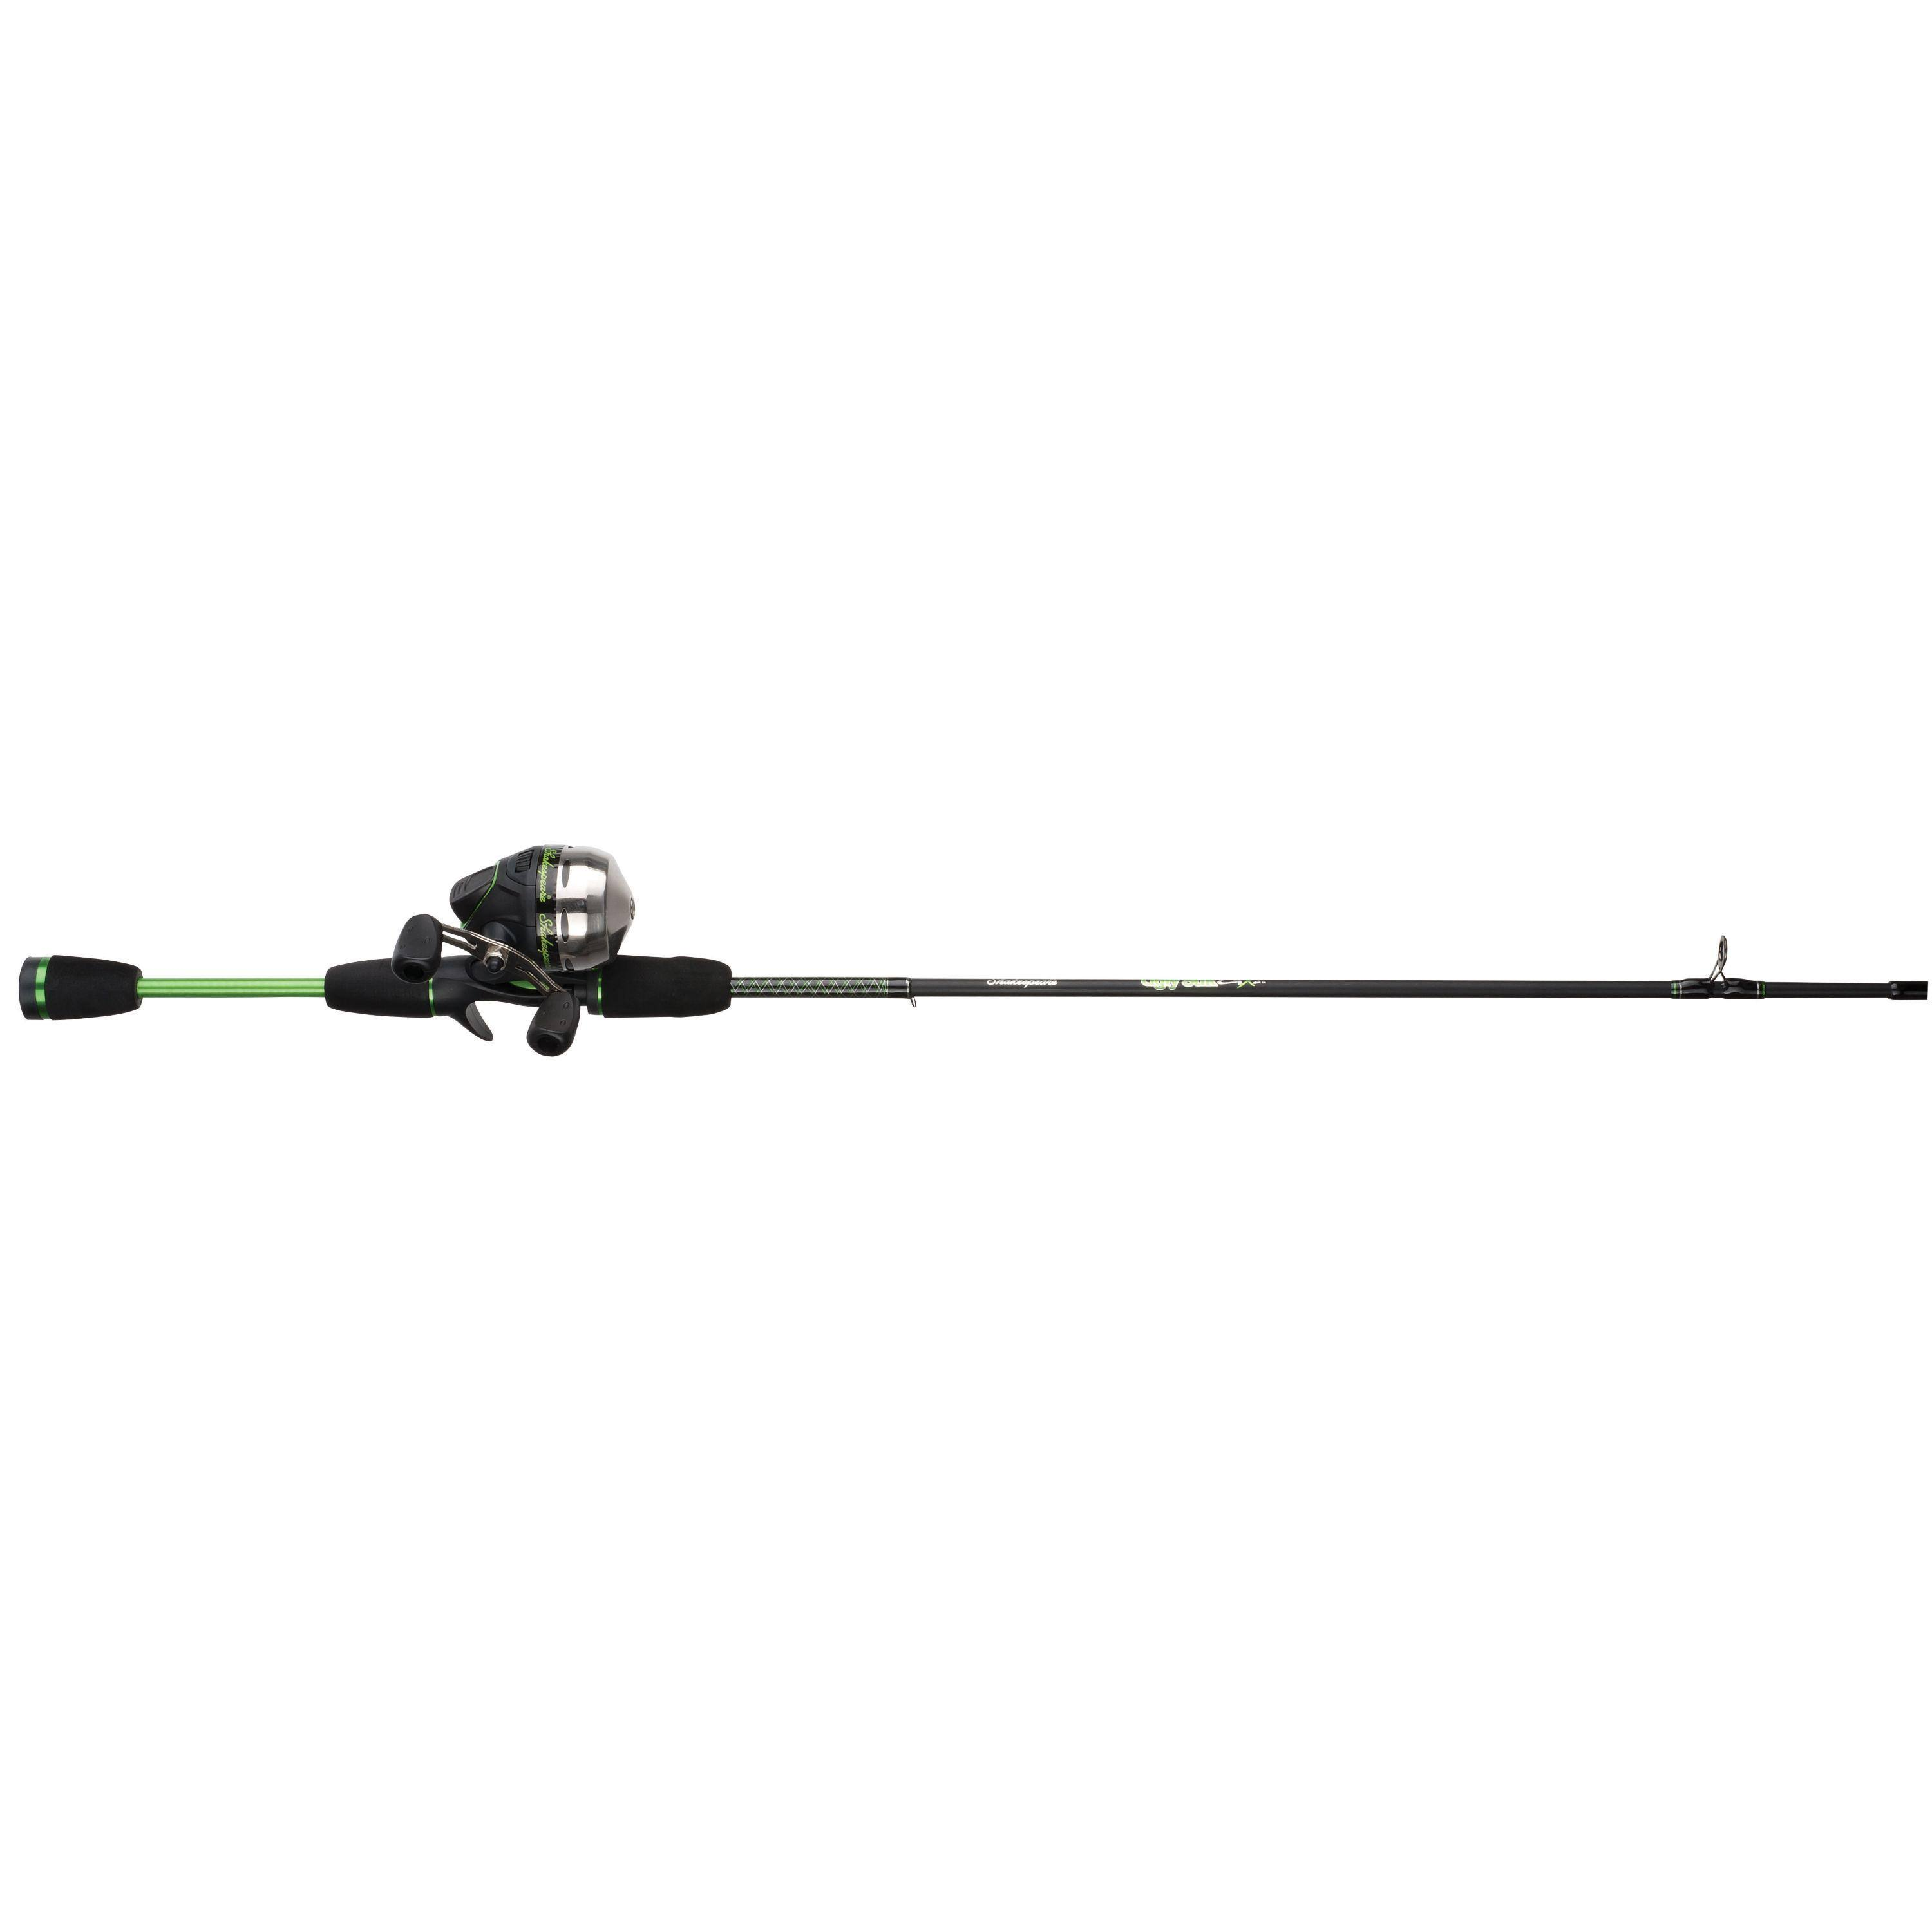 Shakespeare Ugly Stik Gx2 Youth Spincast Reel and Fishing Rod